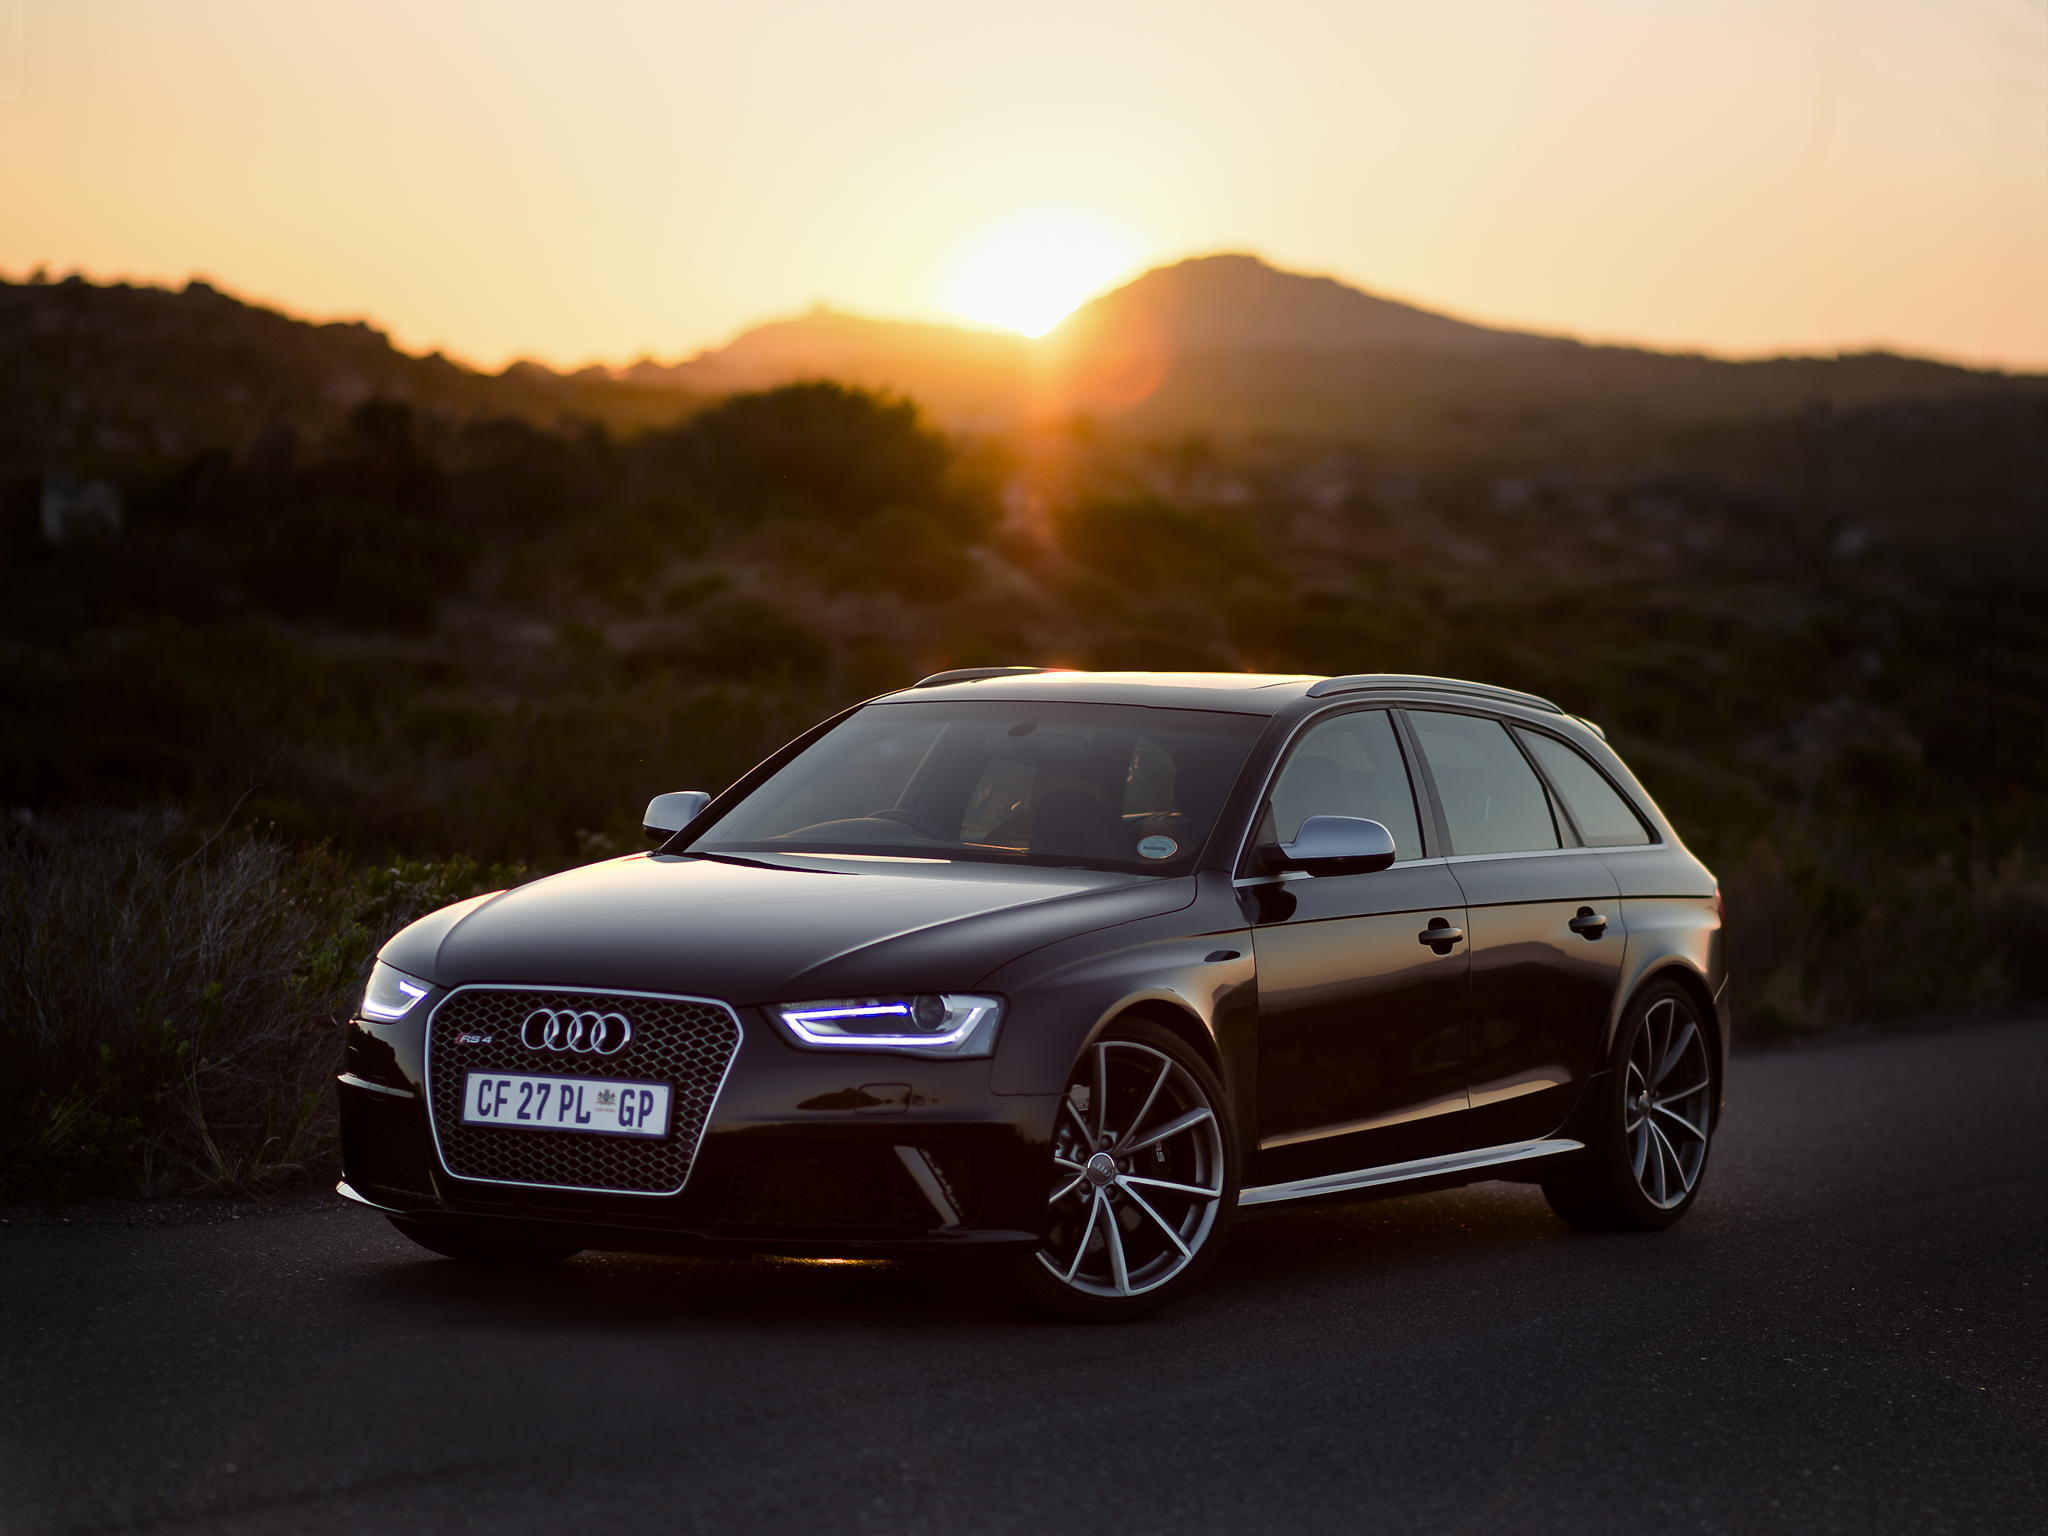 112798 download wallpaper Sunset, Audi, Cars, Side View, Rs4 screensavers and pictures for free